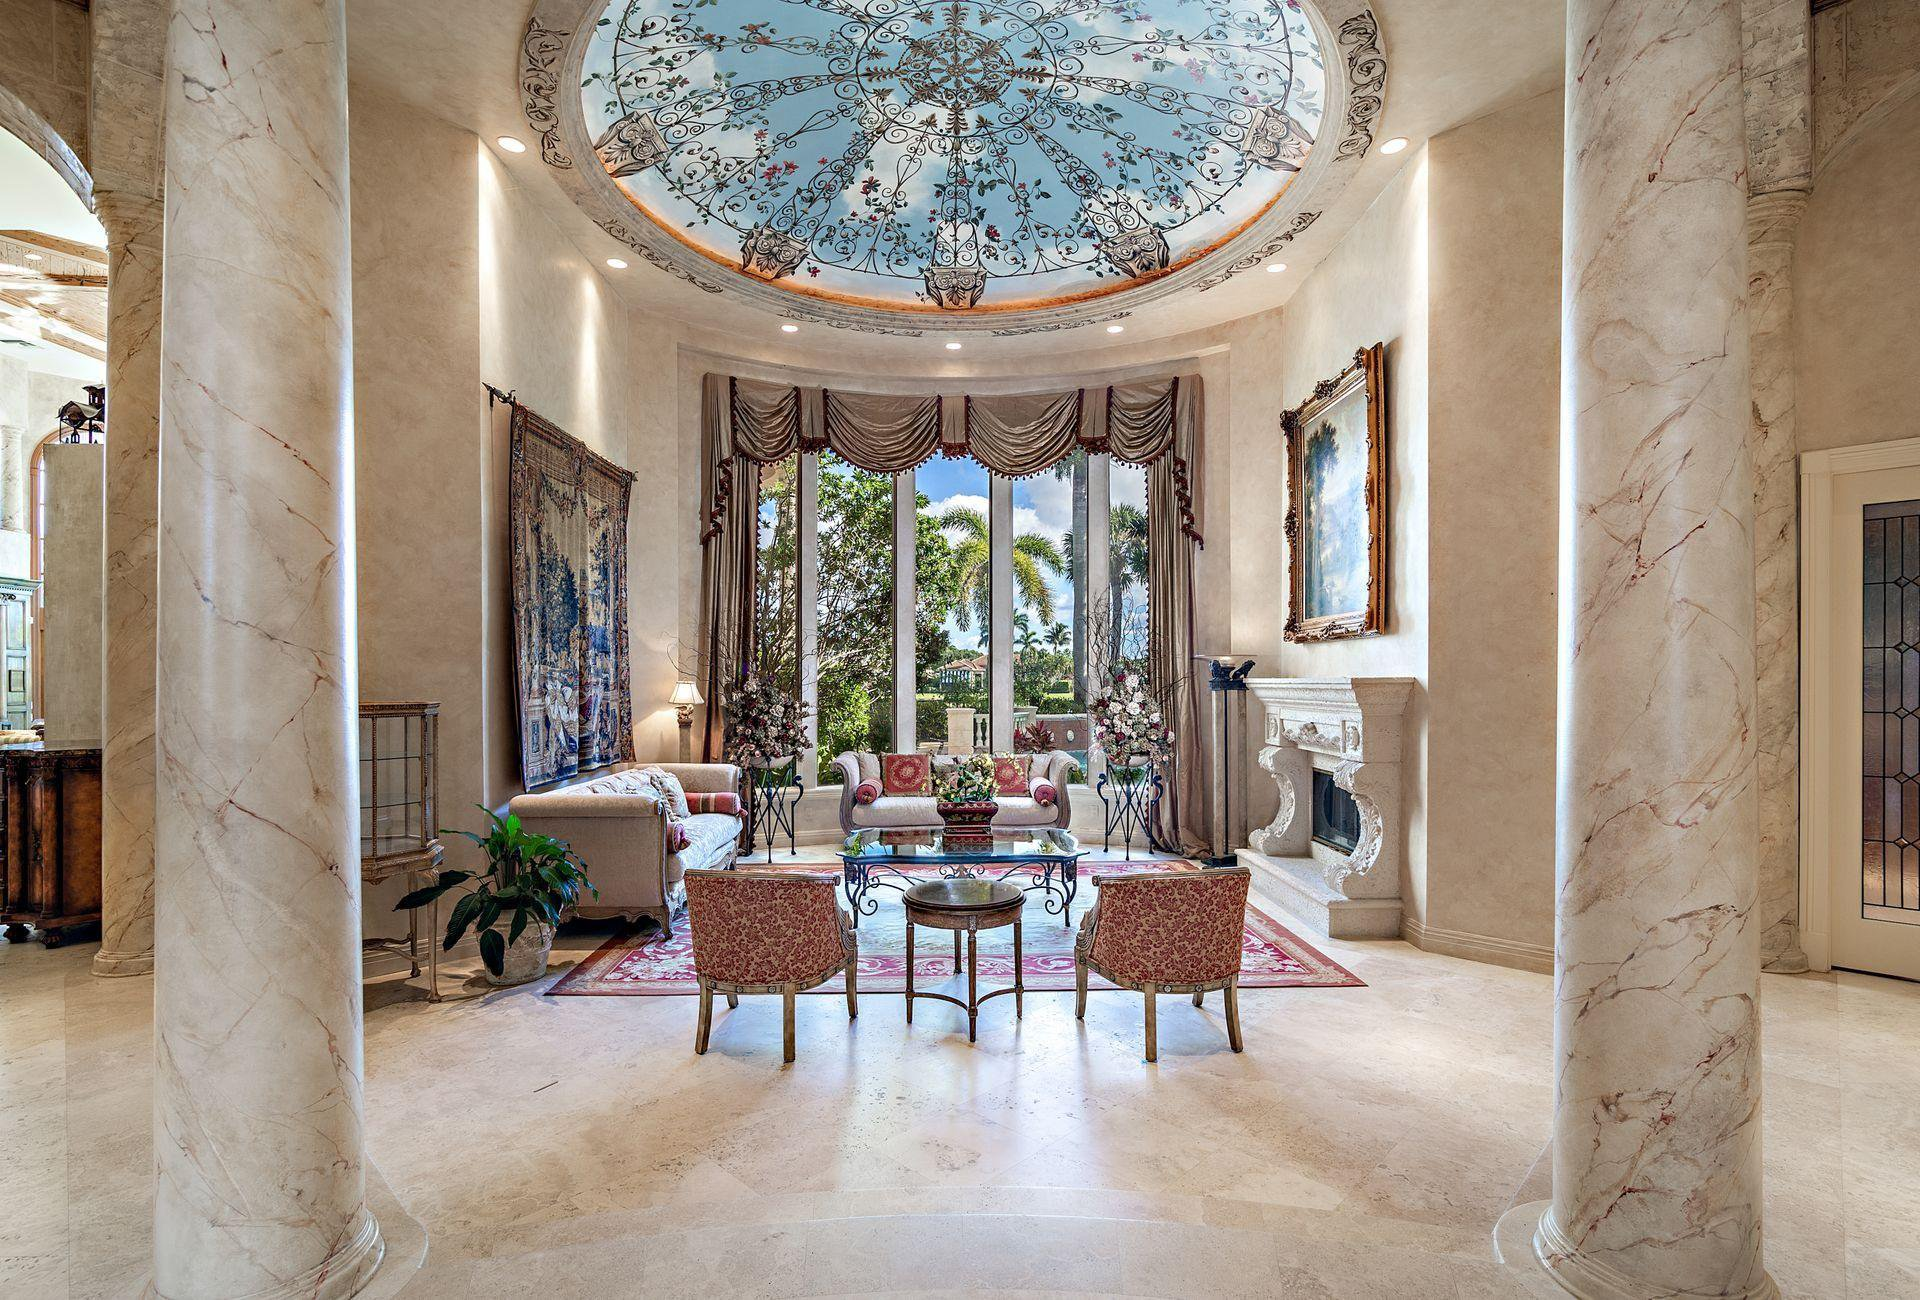 Luxury Homes for Sale in FL